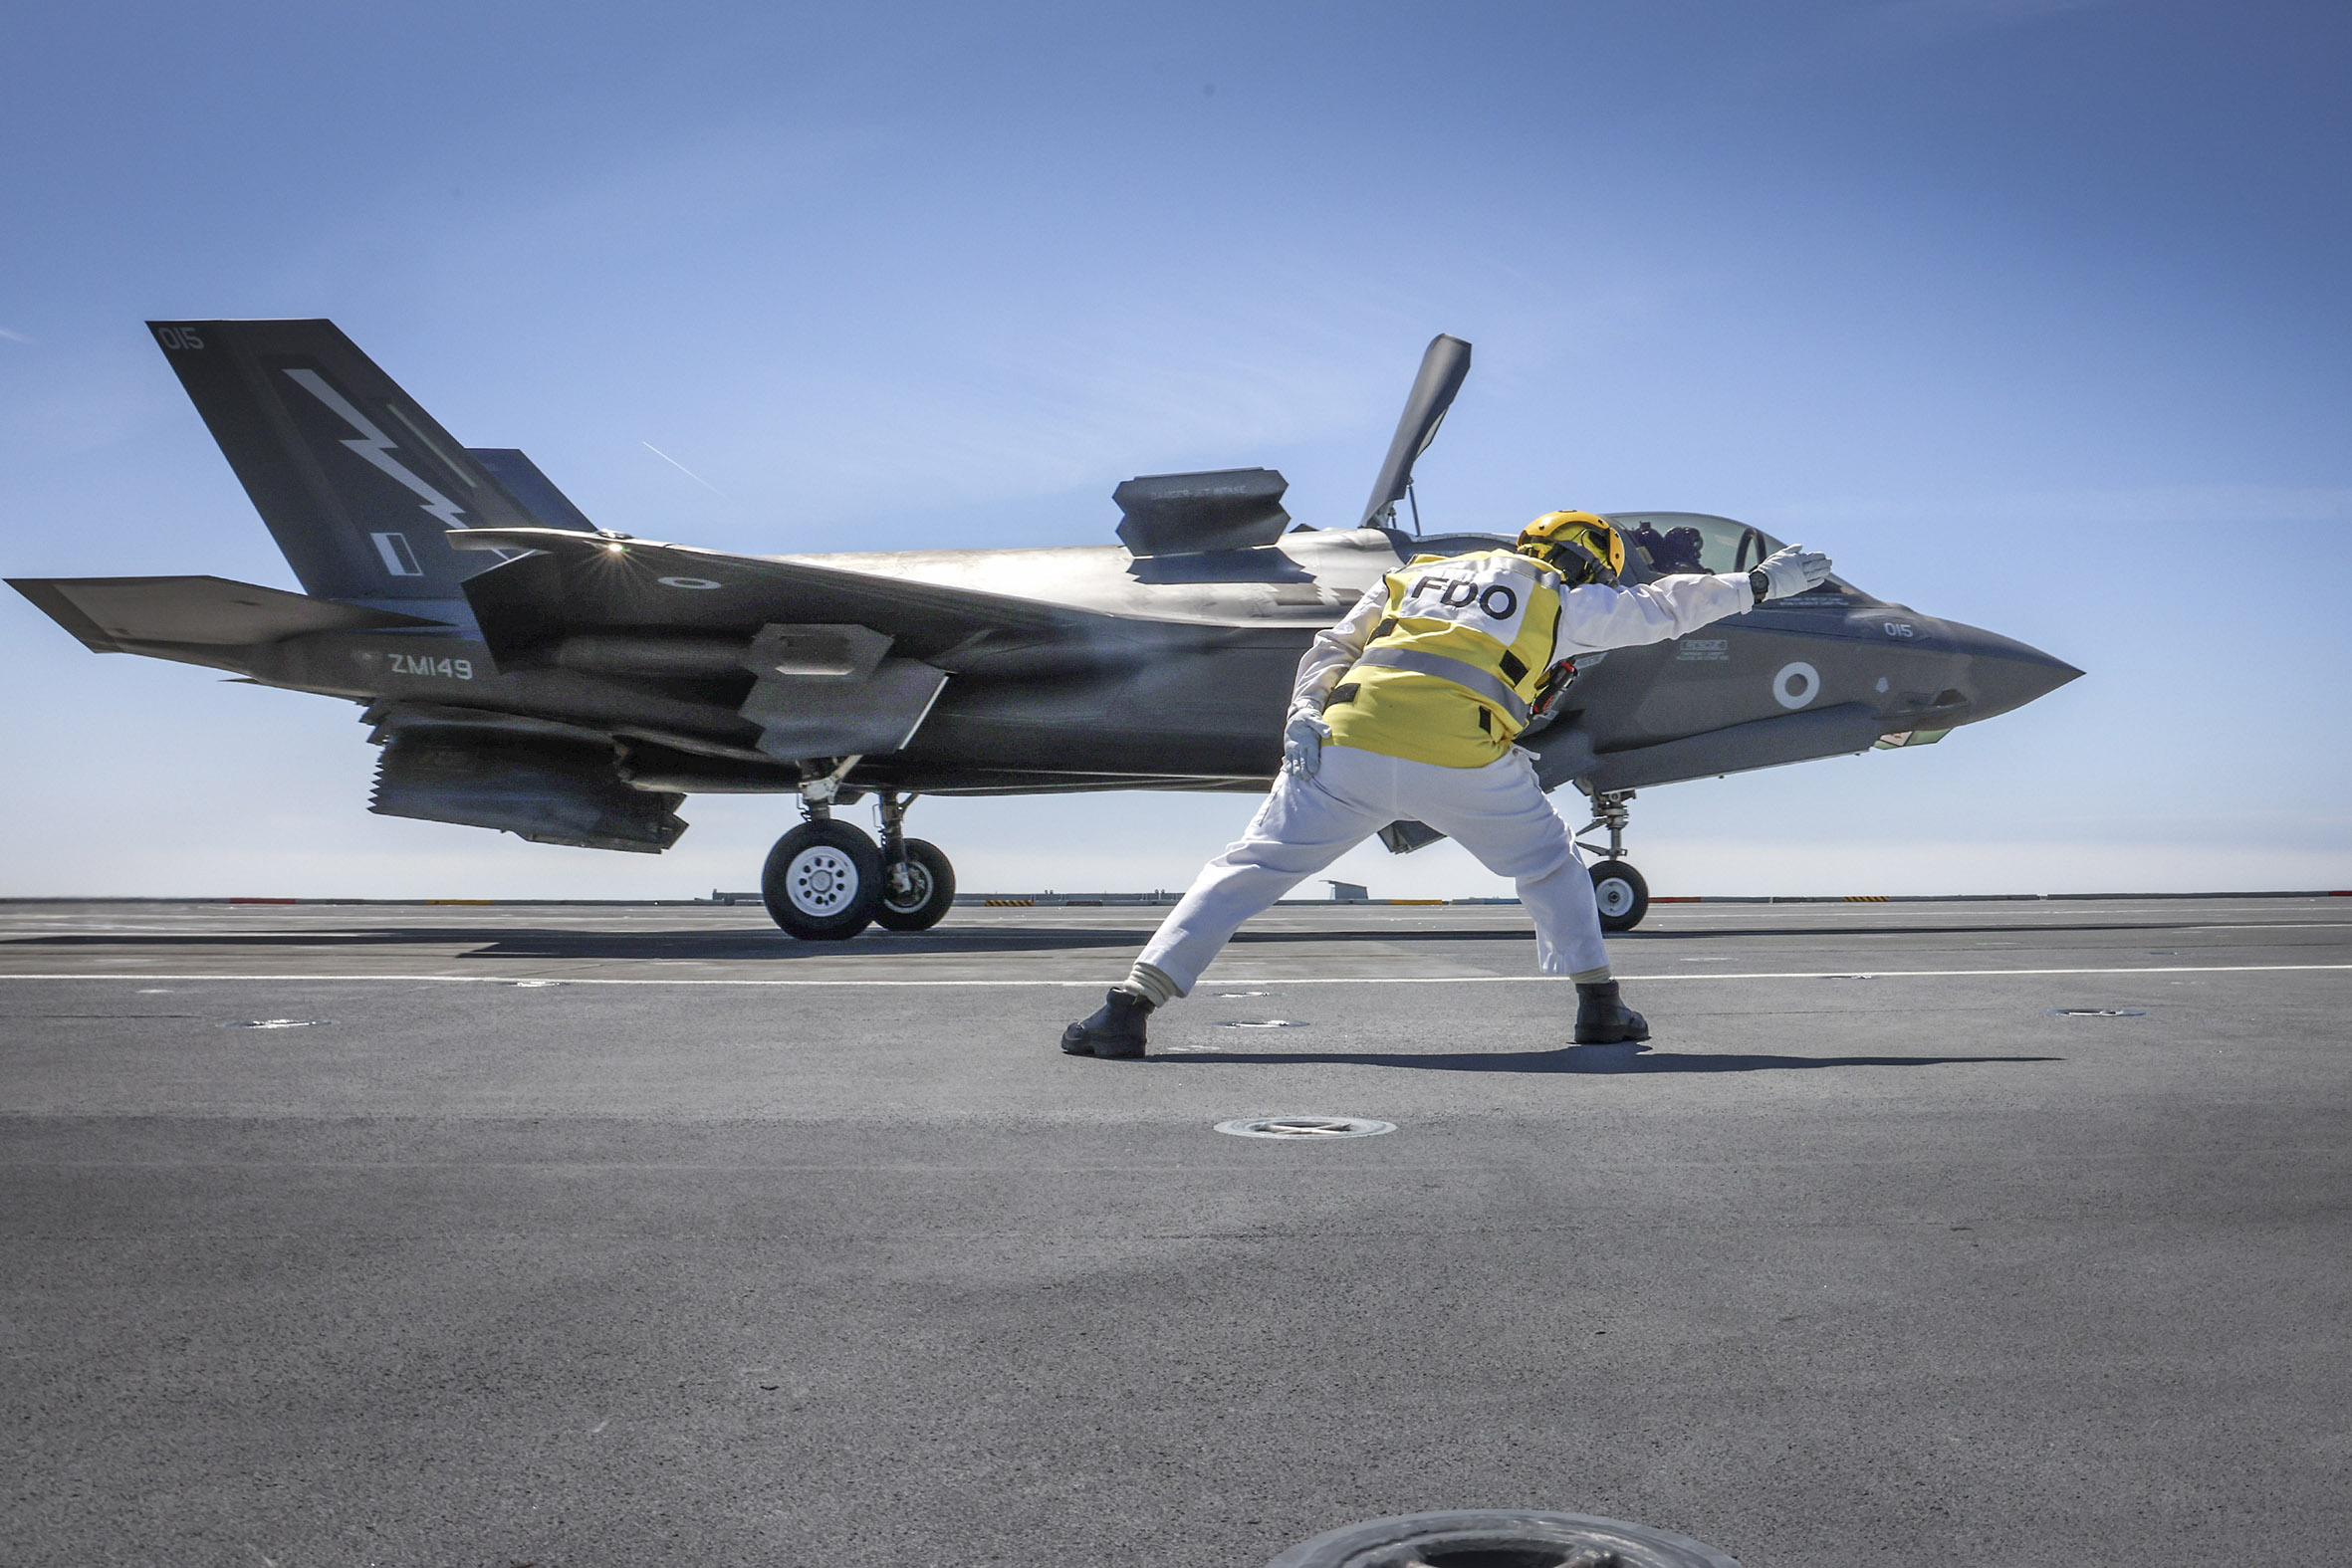 Go for launch - Flight Deck Officer Lieutenant Graham Blick gives the first launch of an F-35 the go-ahead